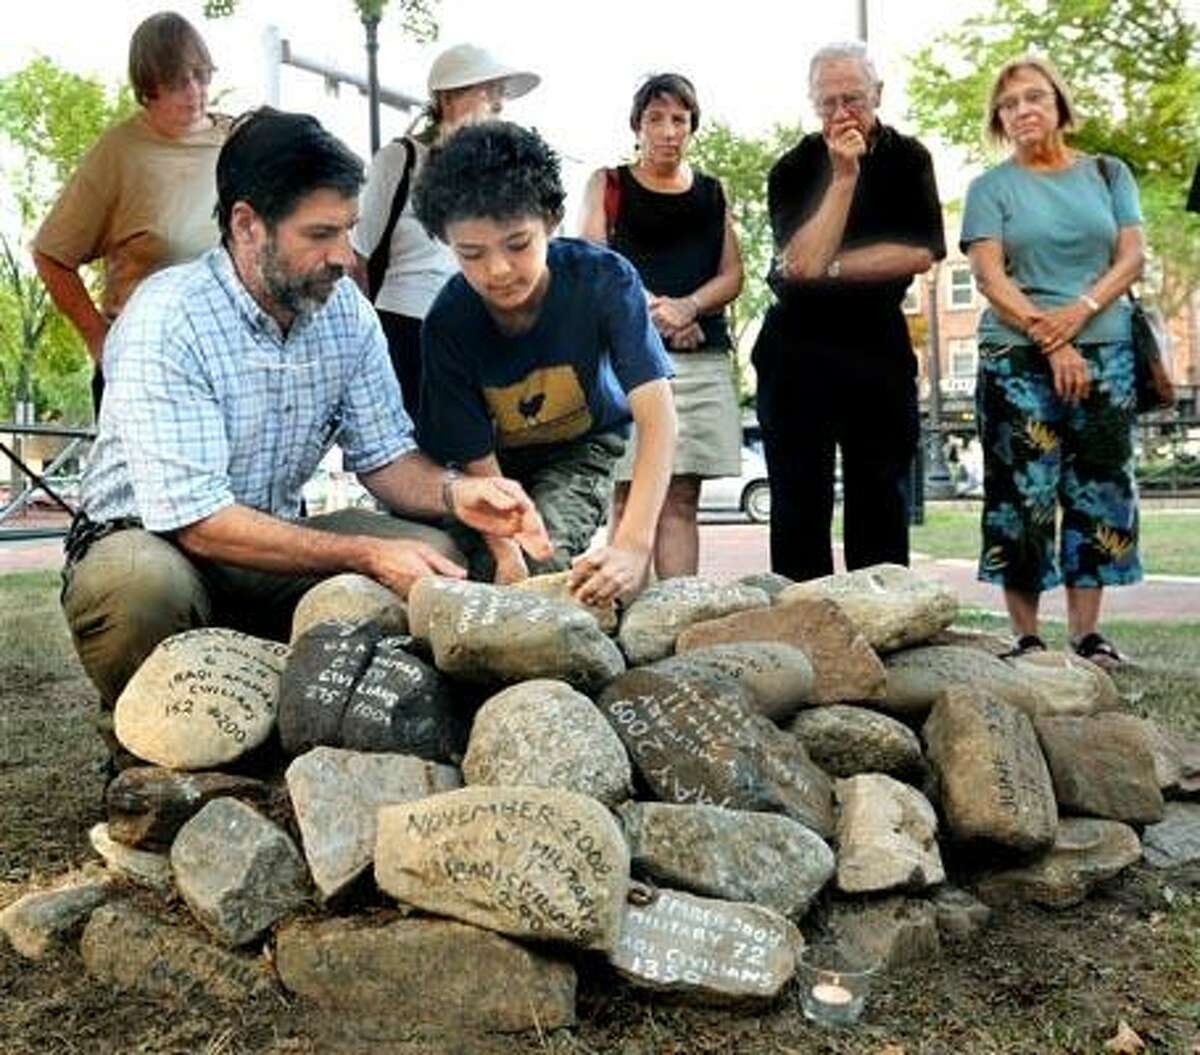 On the Green between Elm Street and Broadway, Ray Pagliaro (L) and his son Edwardo Pagliaro-Haque, 8, of Hamden, place a stone on a cairn marking the dead fin Afghanistan and Iraq. A new stone marking the dead is ceremoniously placed each month. (Melanie Stengel/Register)